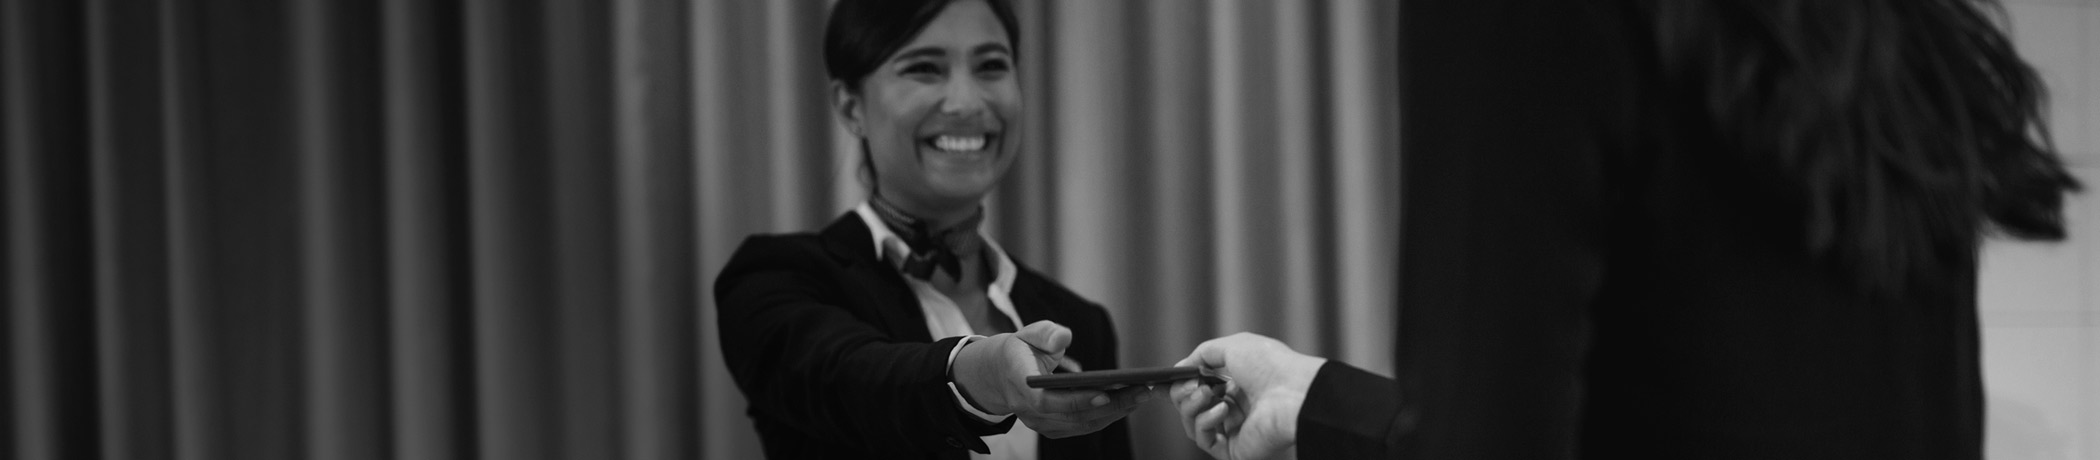 Hospitality worker checking in a guest at the front desk